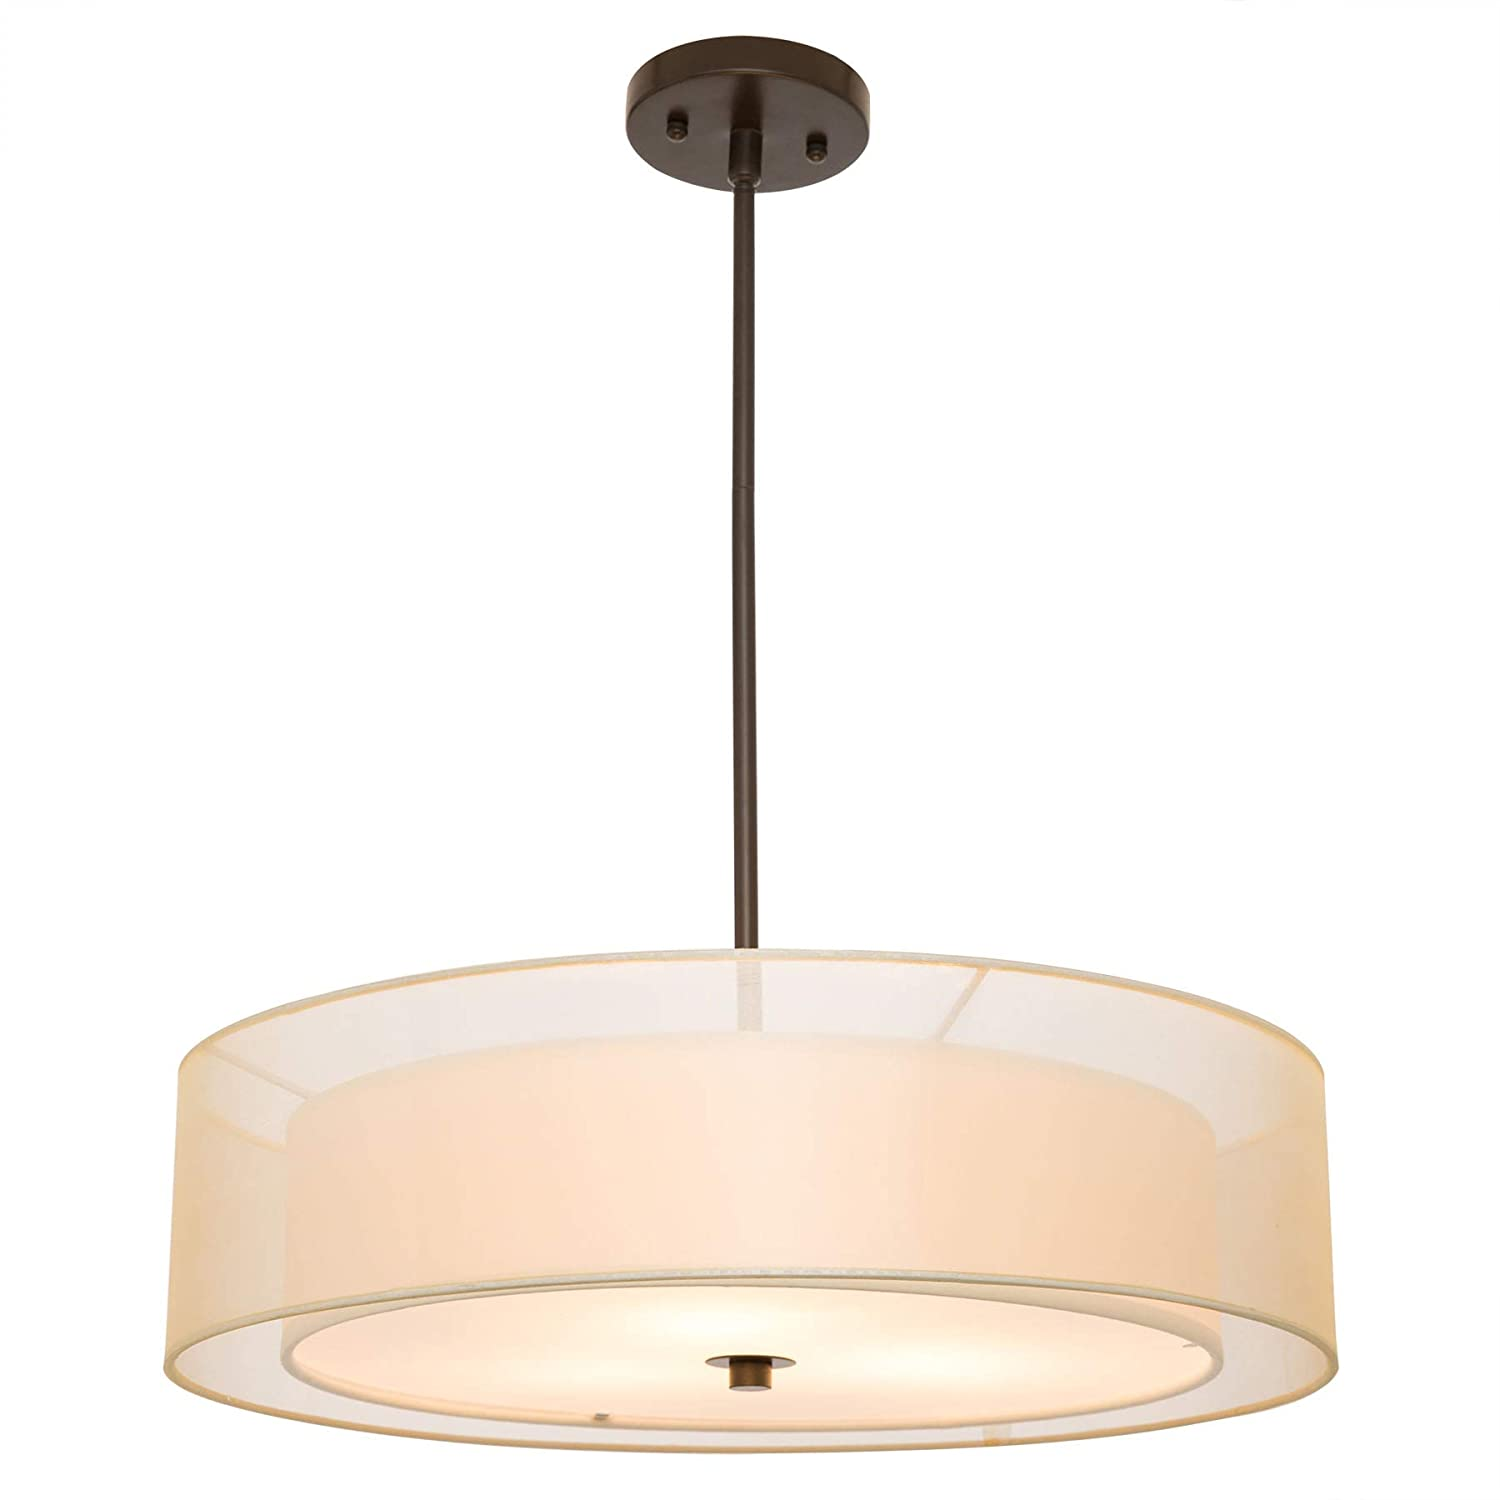 CO-Z 3 Light Double Drum Pendant Light, Antique Bronze Convertible Semi-Flush Mount Drum Ceiling Light Fixture for Kitchen Island Dining Table Bedroom Entry Bar, Modern Hanging Lights Chandelier